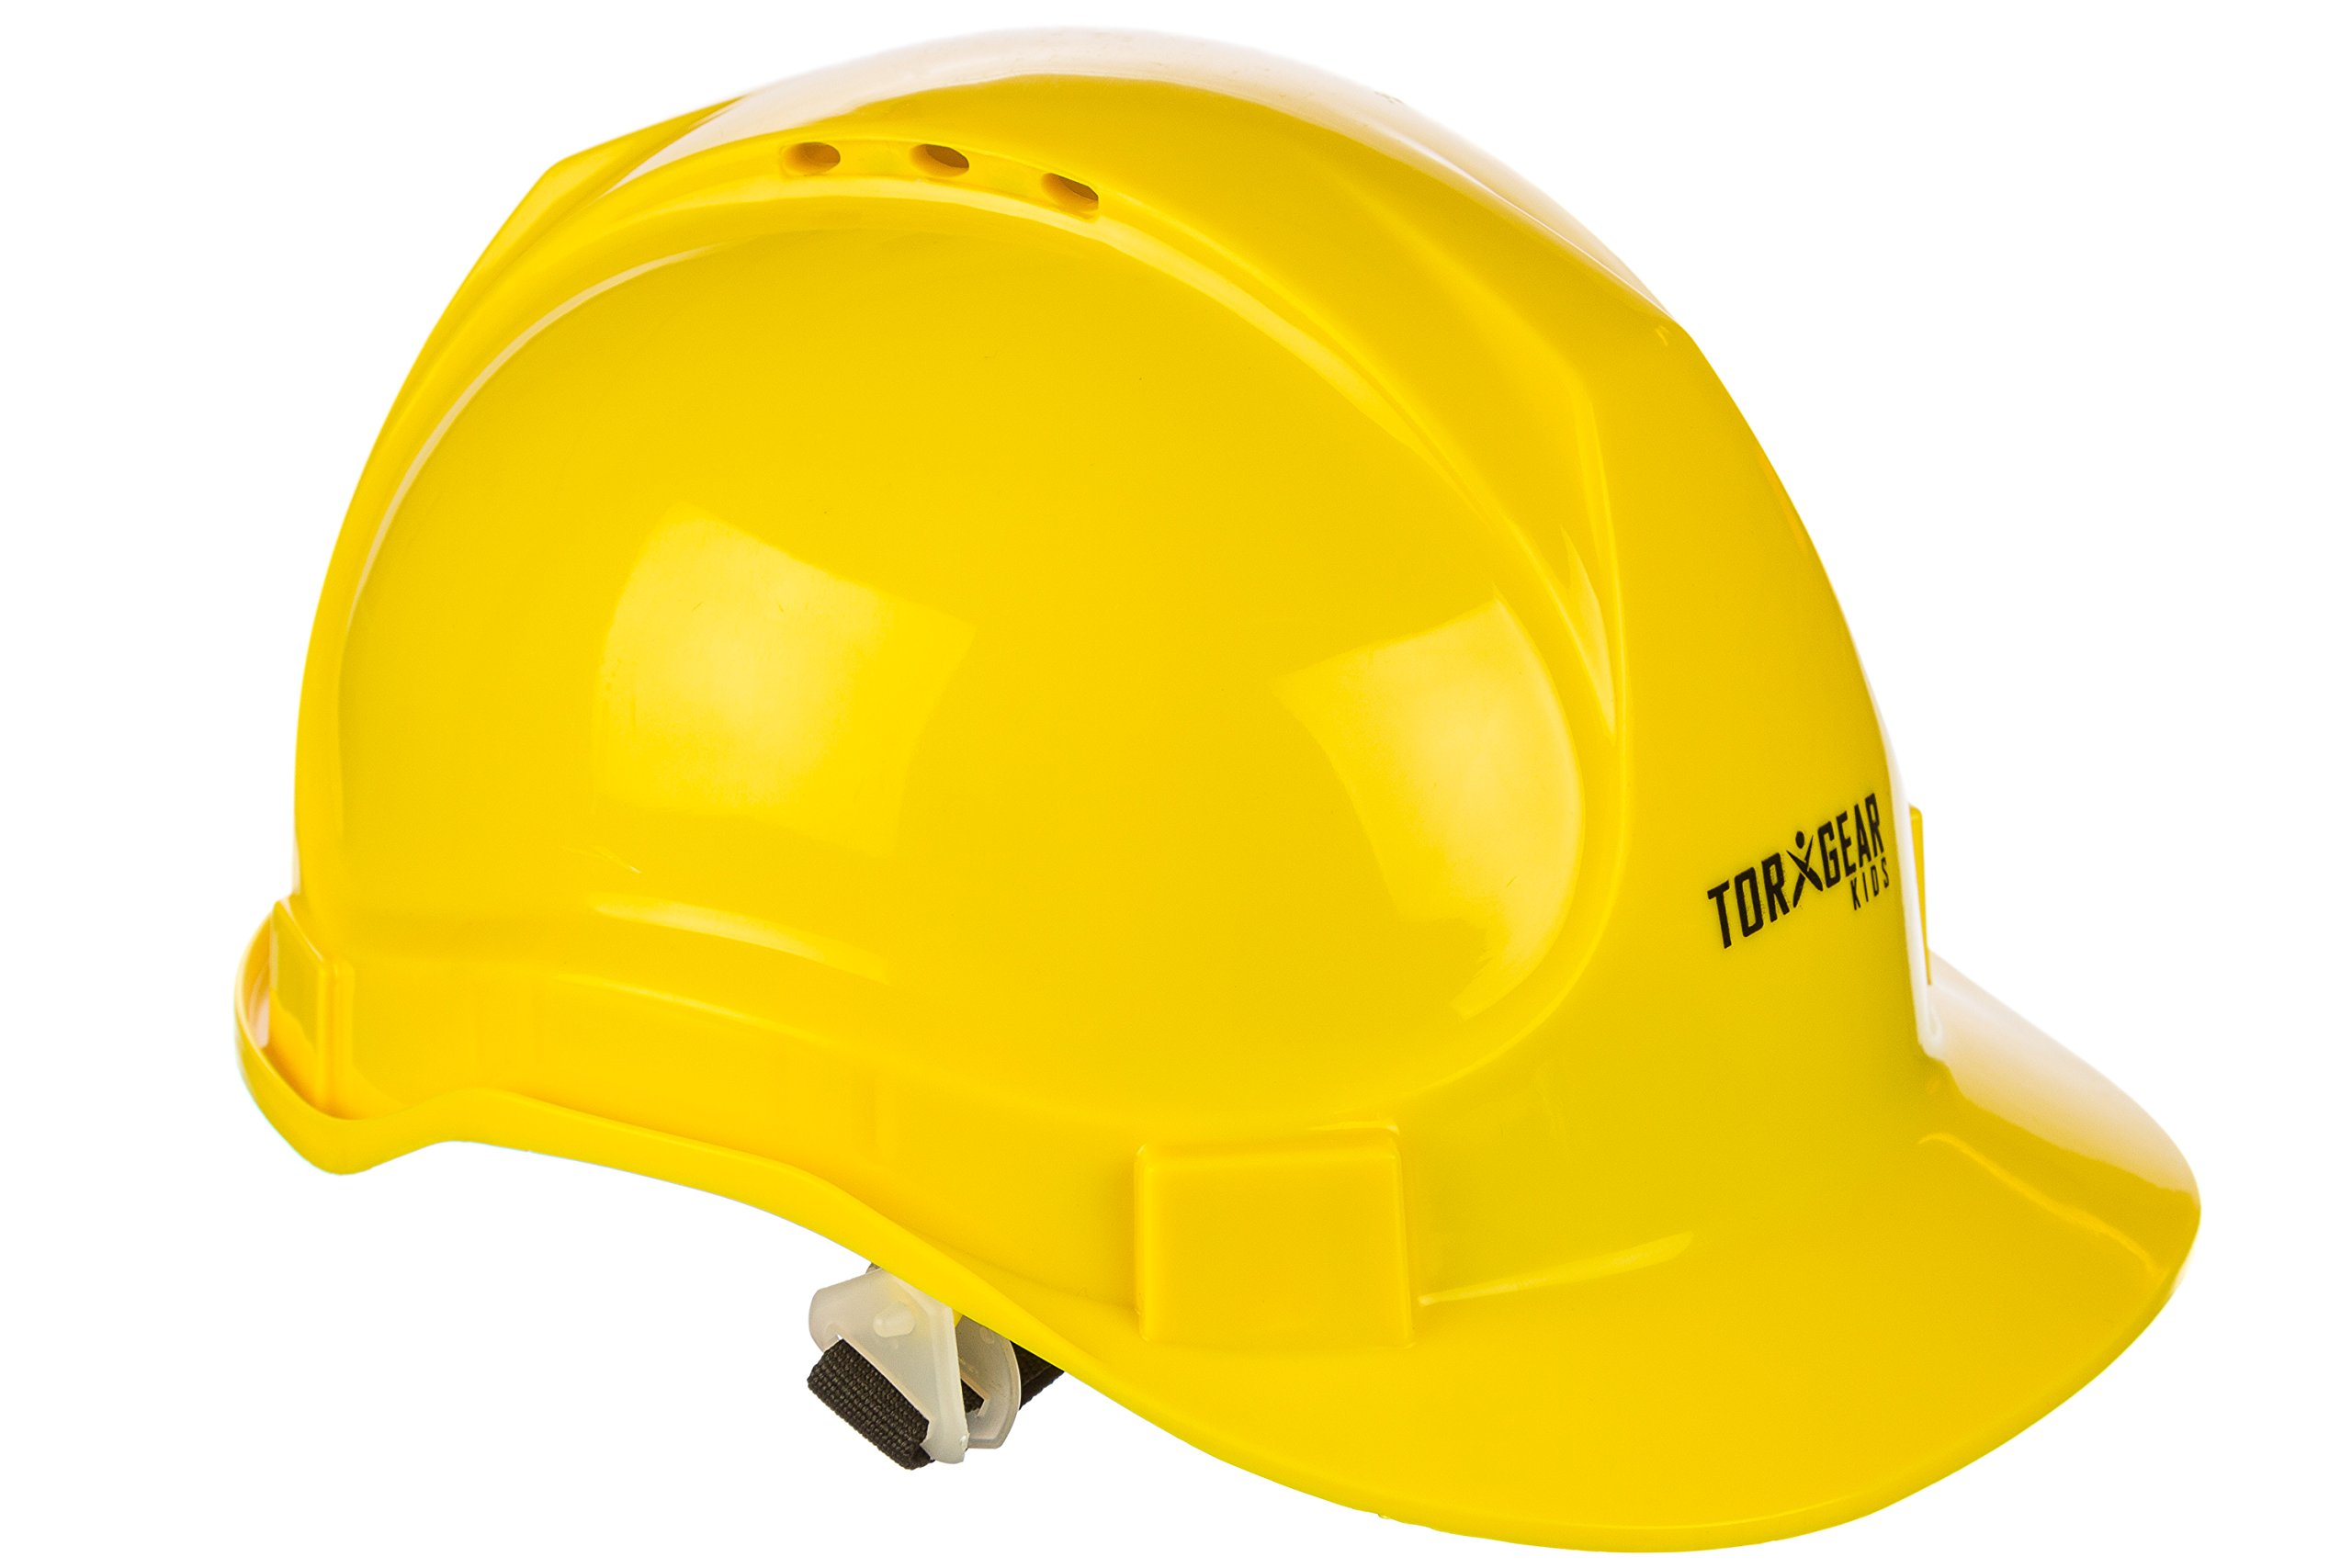 Child Hard Hat - Ages 2 to 6 - Kids Yellow Safety Construction Helmet Costume